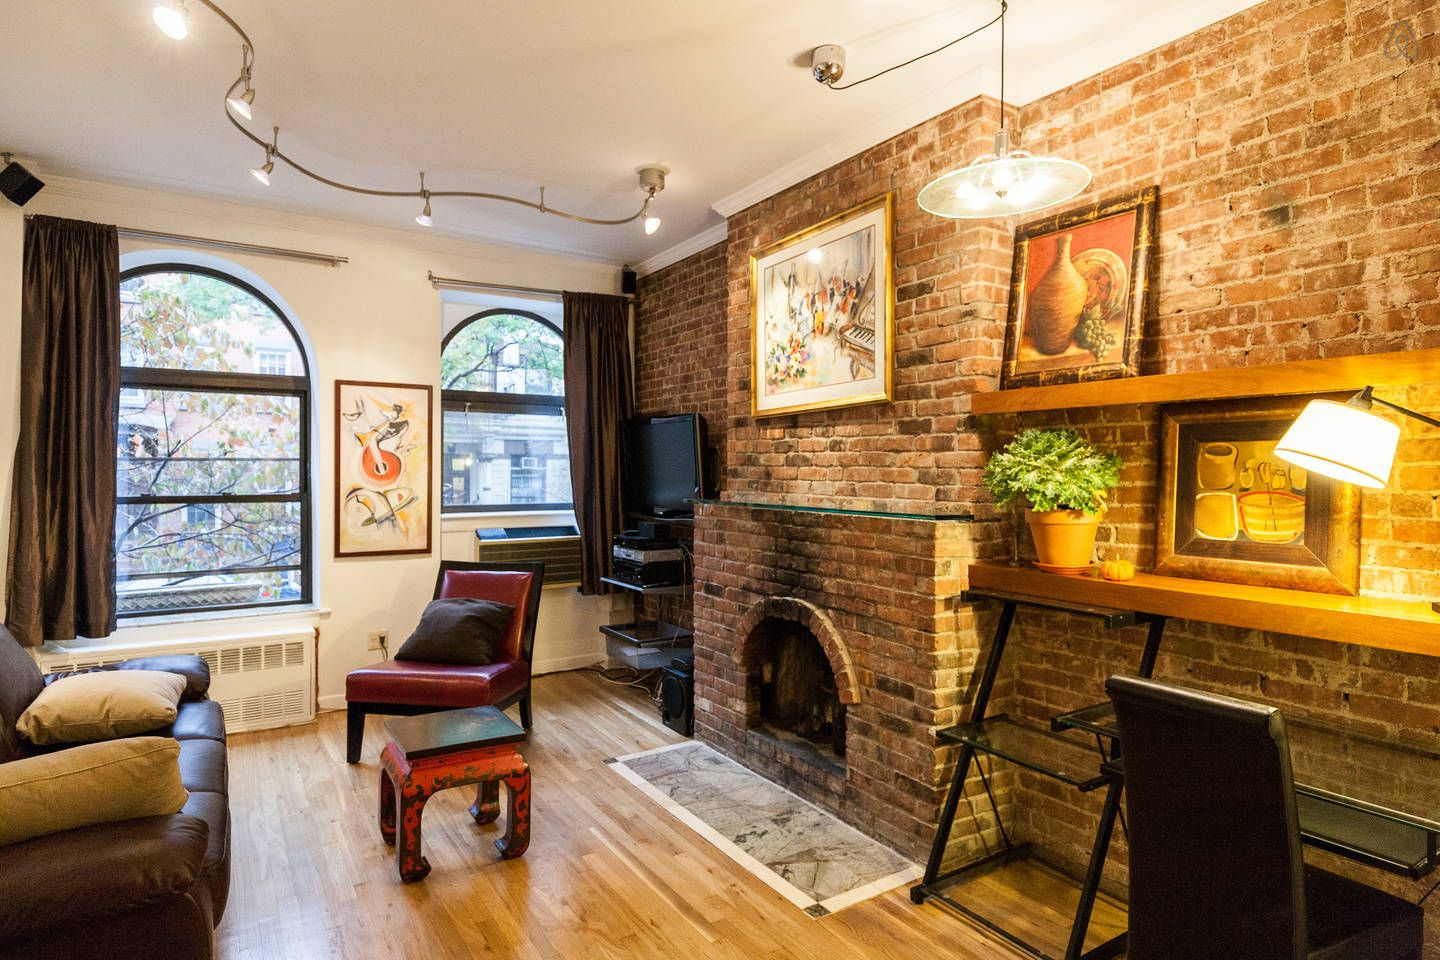 chelsea luxury for less vacation rental in new york new york